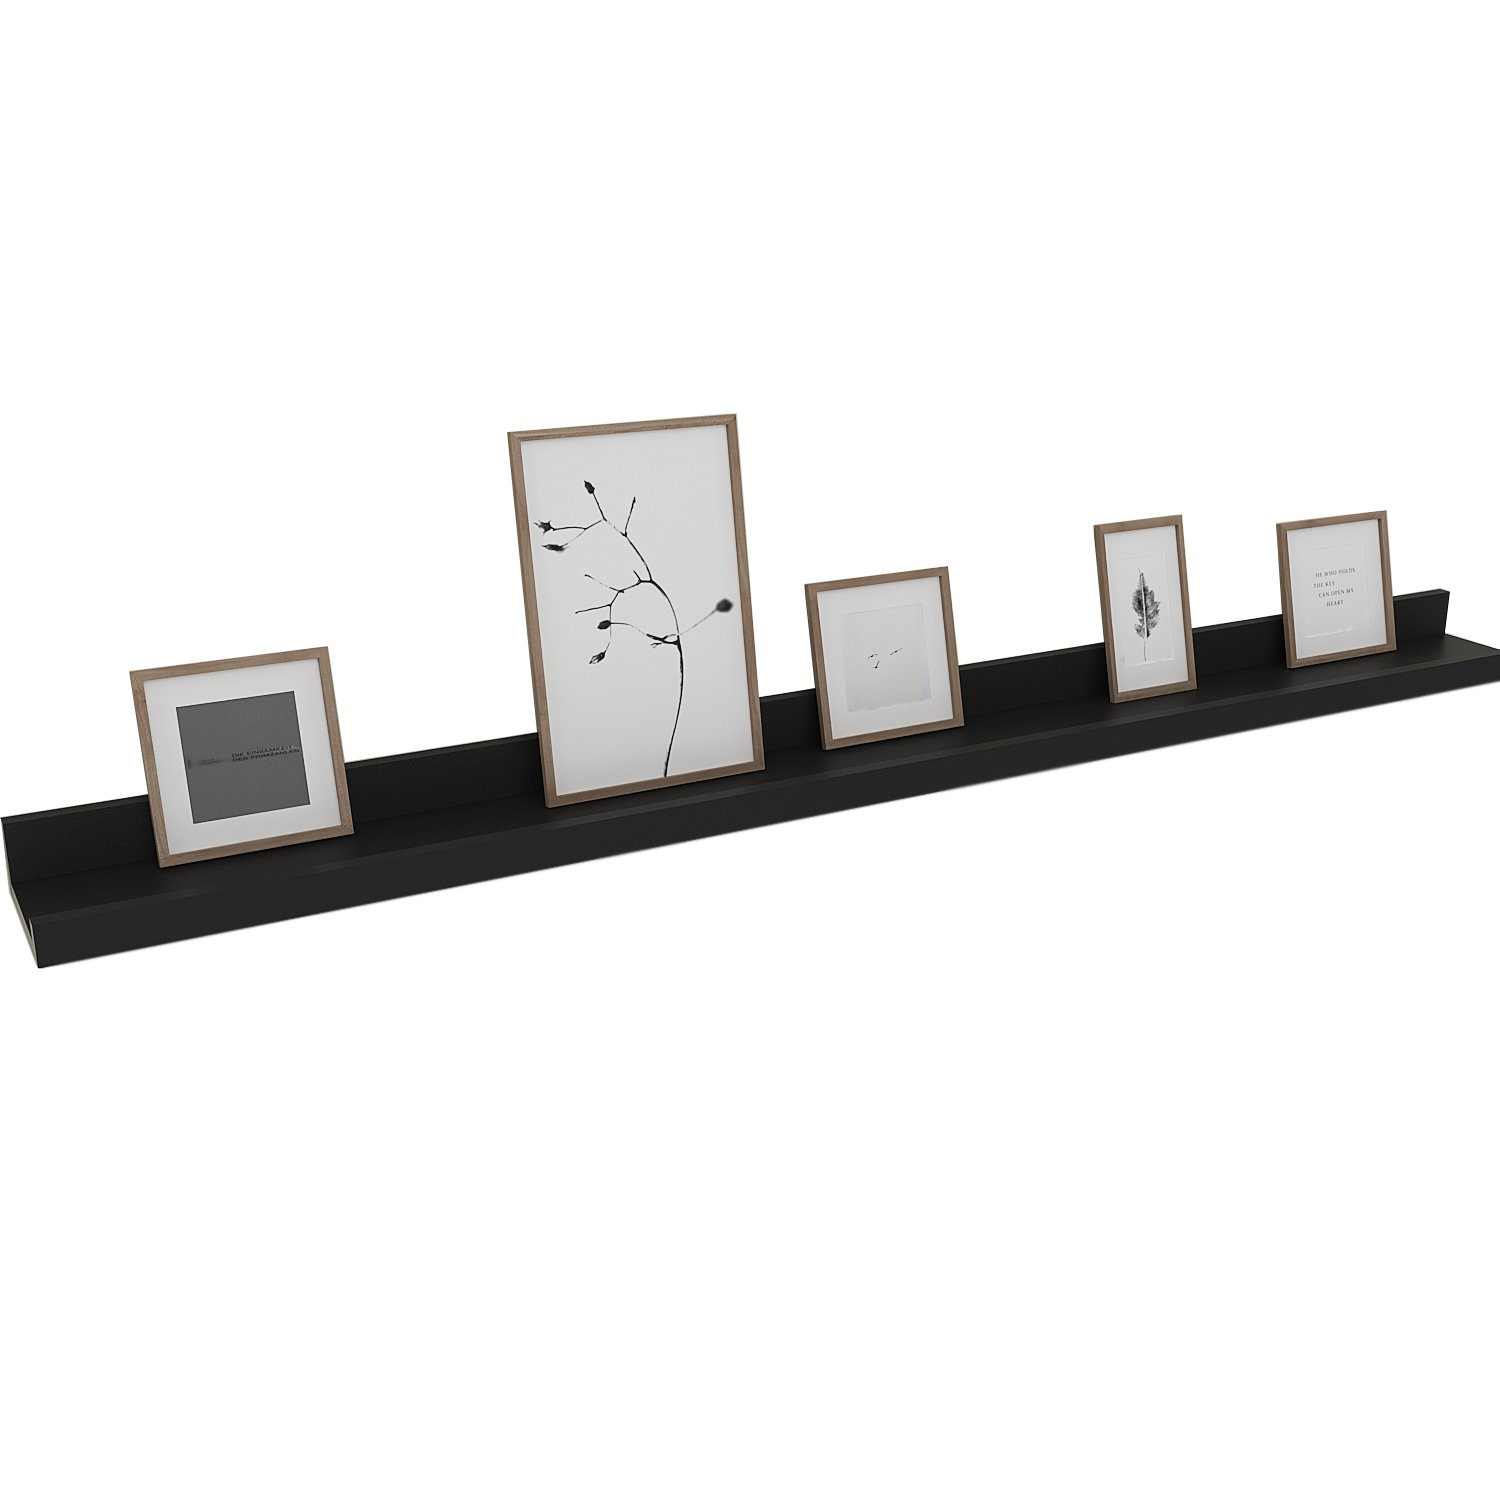 egotrade contemporary wall mounted shelf long floating black for ture frames book display kitchen home phone mount lack shelving unit oval countertop basin ematic bathroom sink